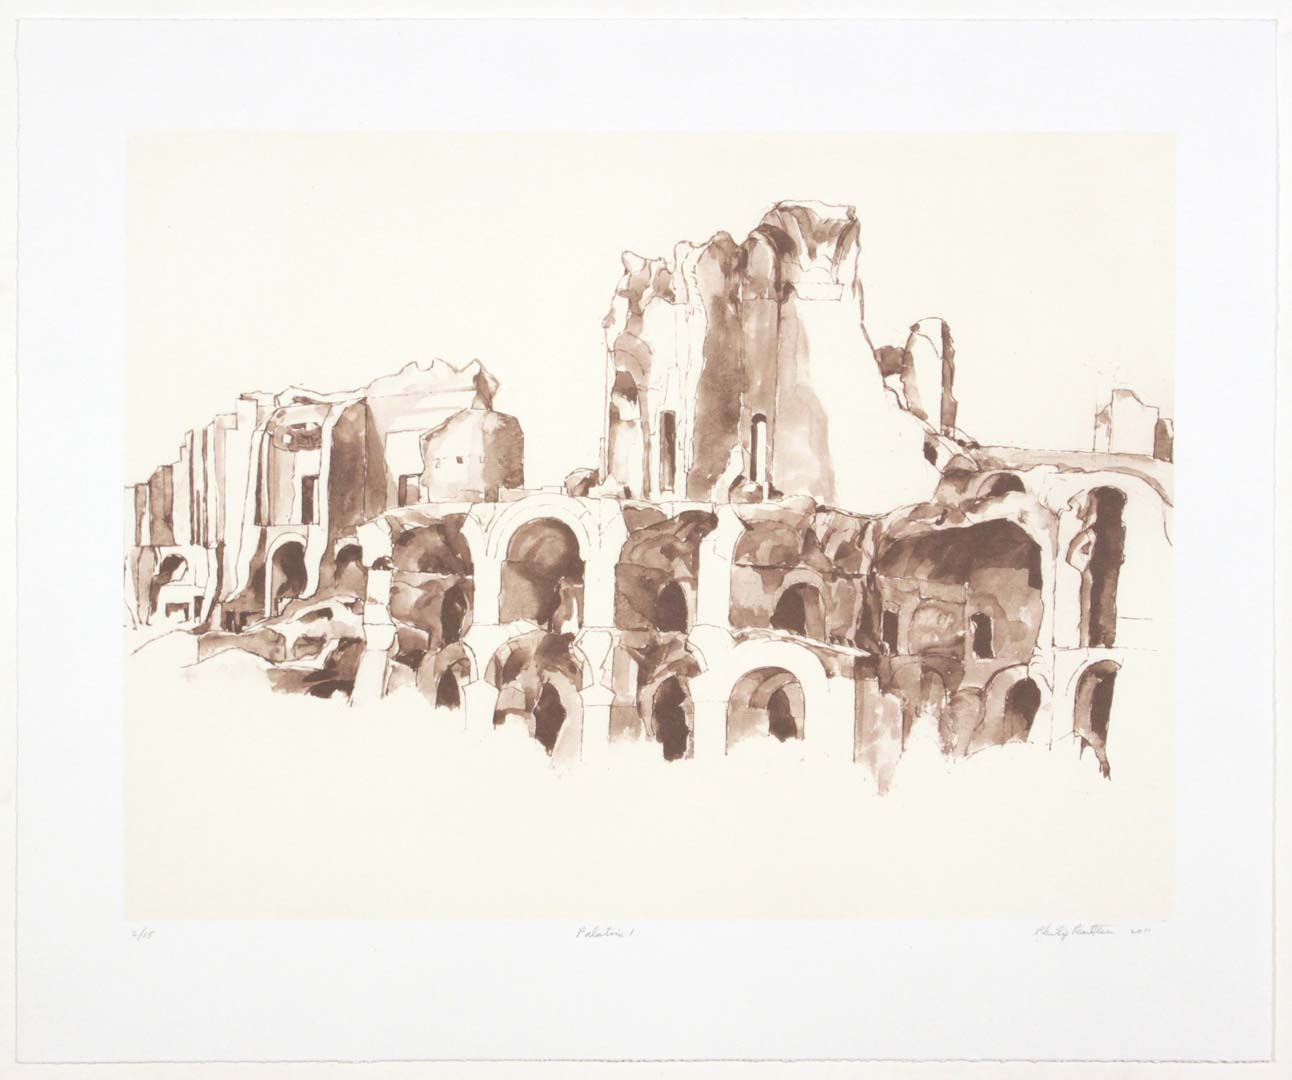 2011 Palatine #1 Lithograph on Paper 20.625 x 24.625